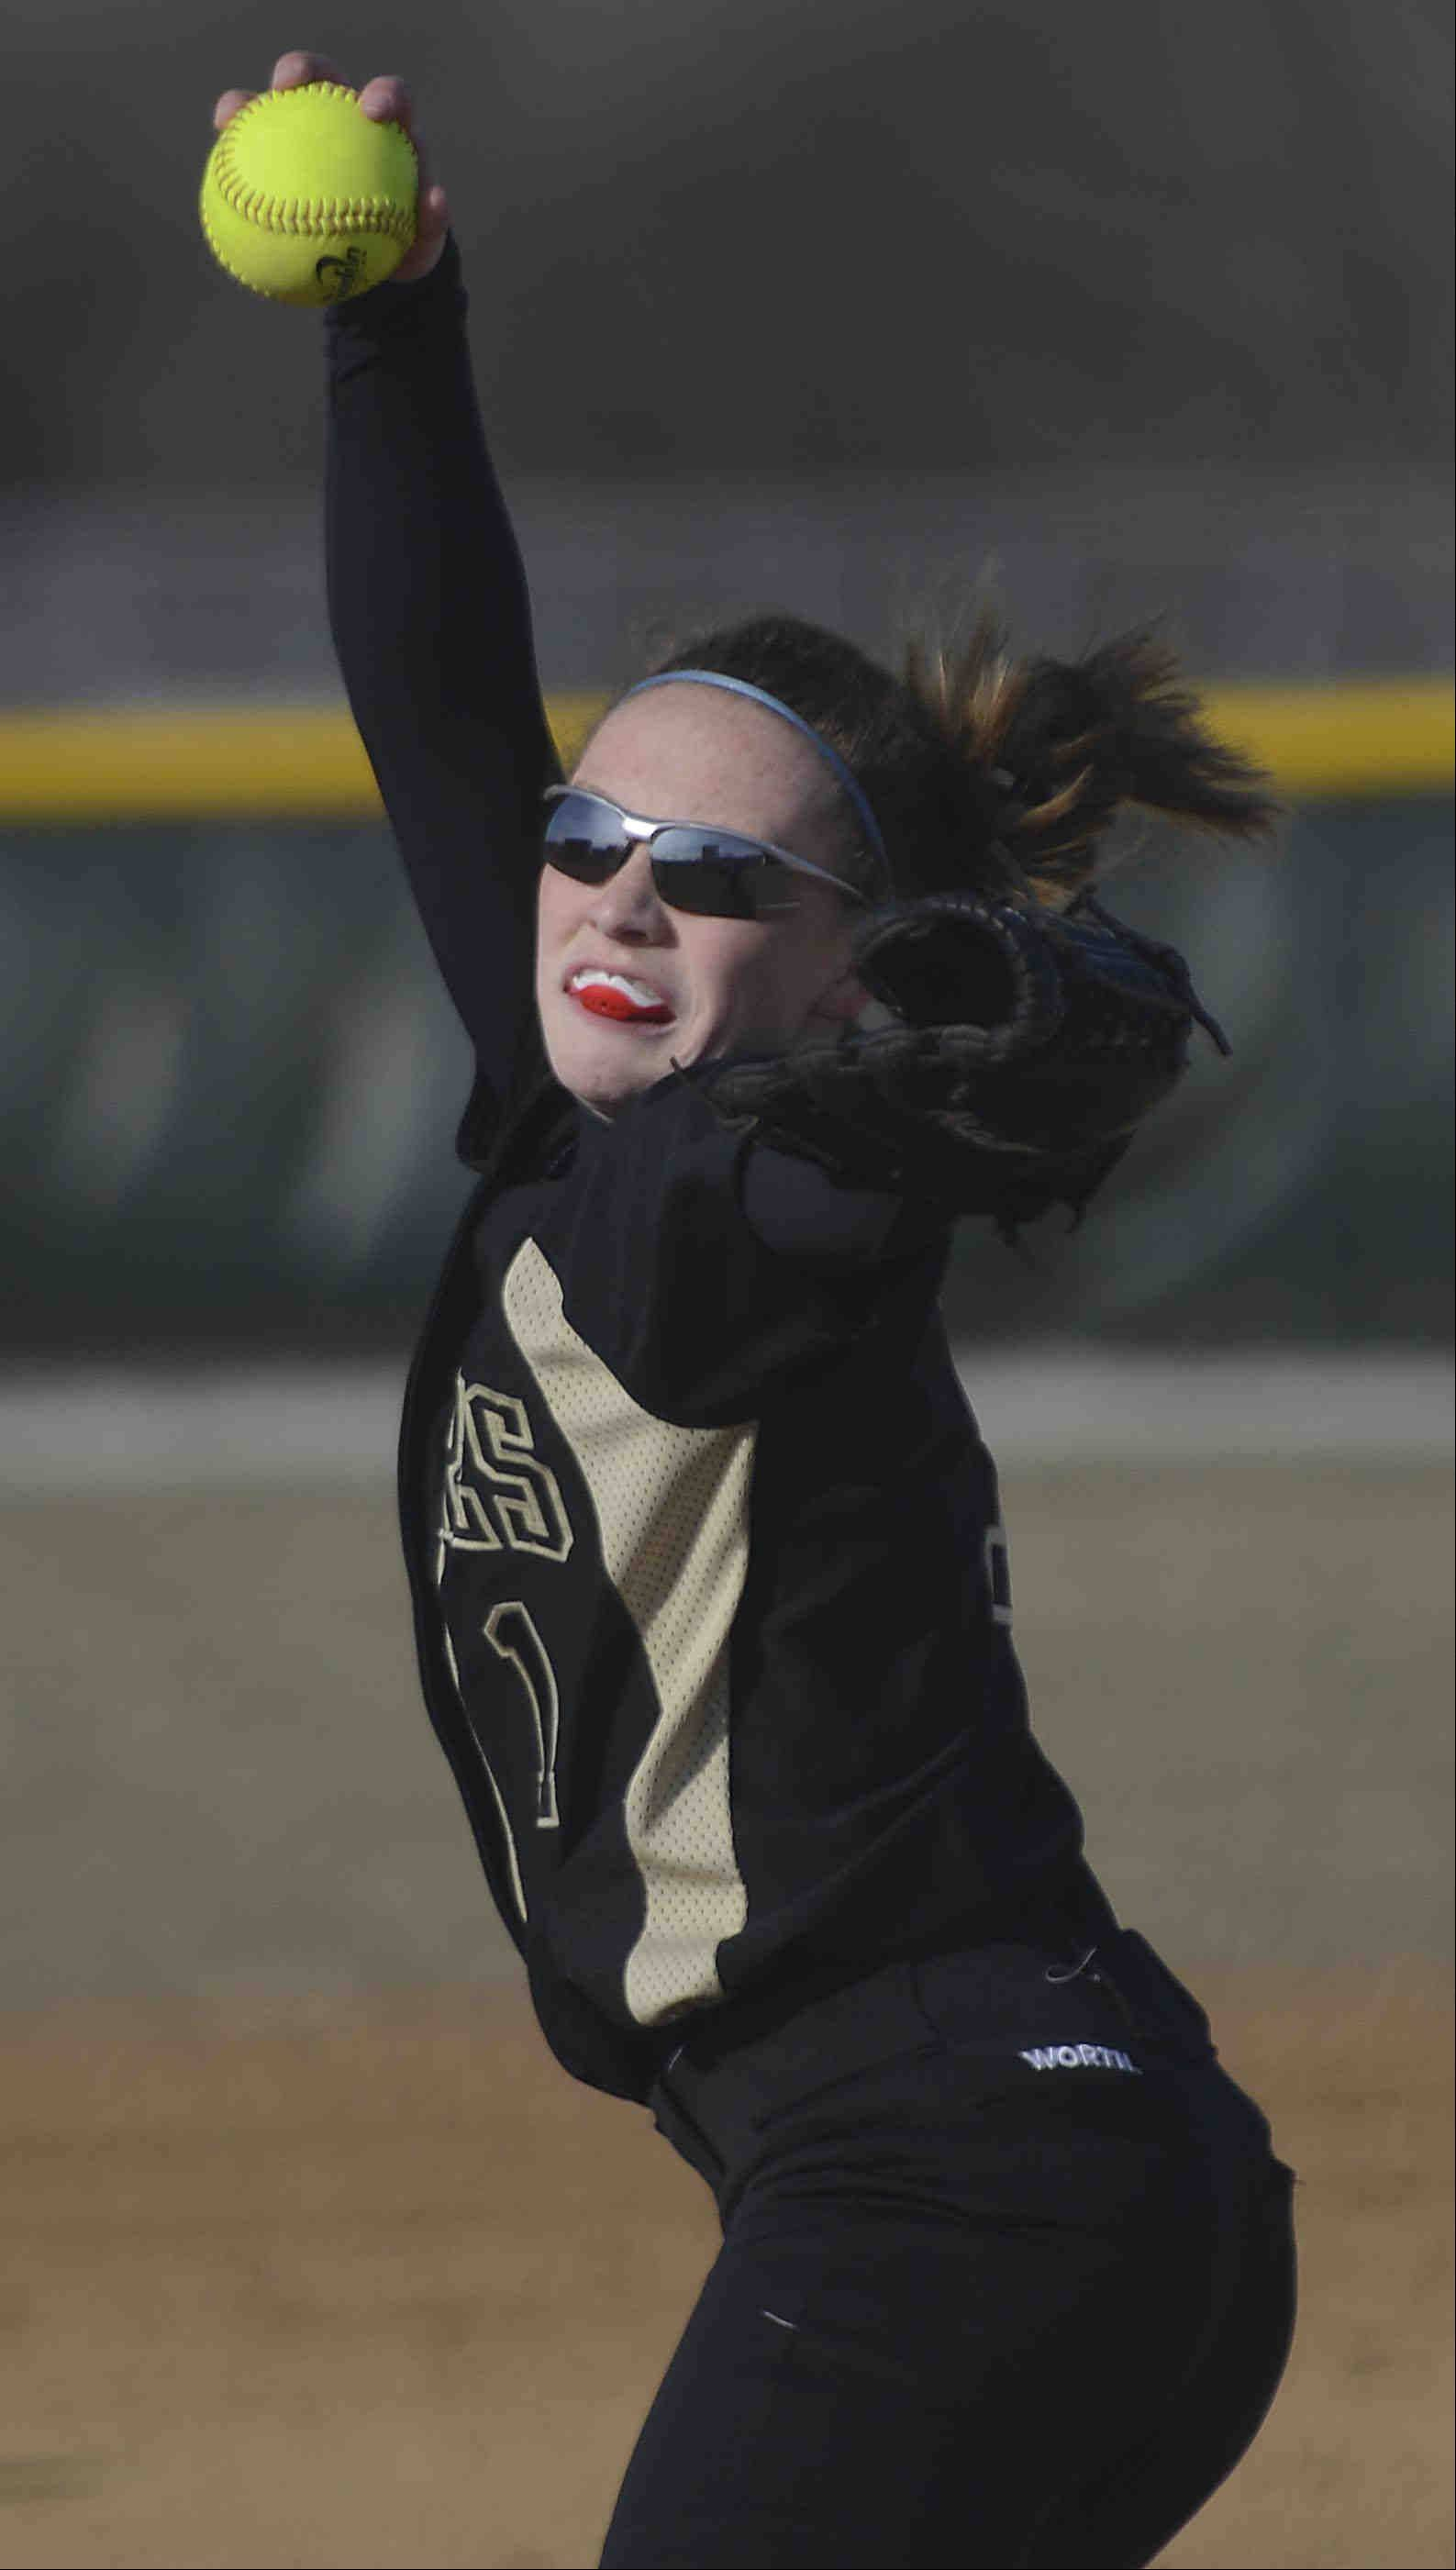 Streamwood starting pitcher Jessica Daley delivers against Bartlett Wednesday in Bartlett.